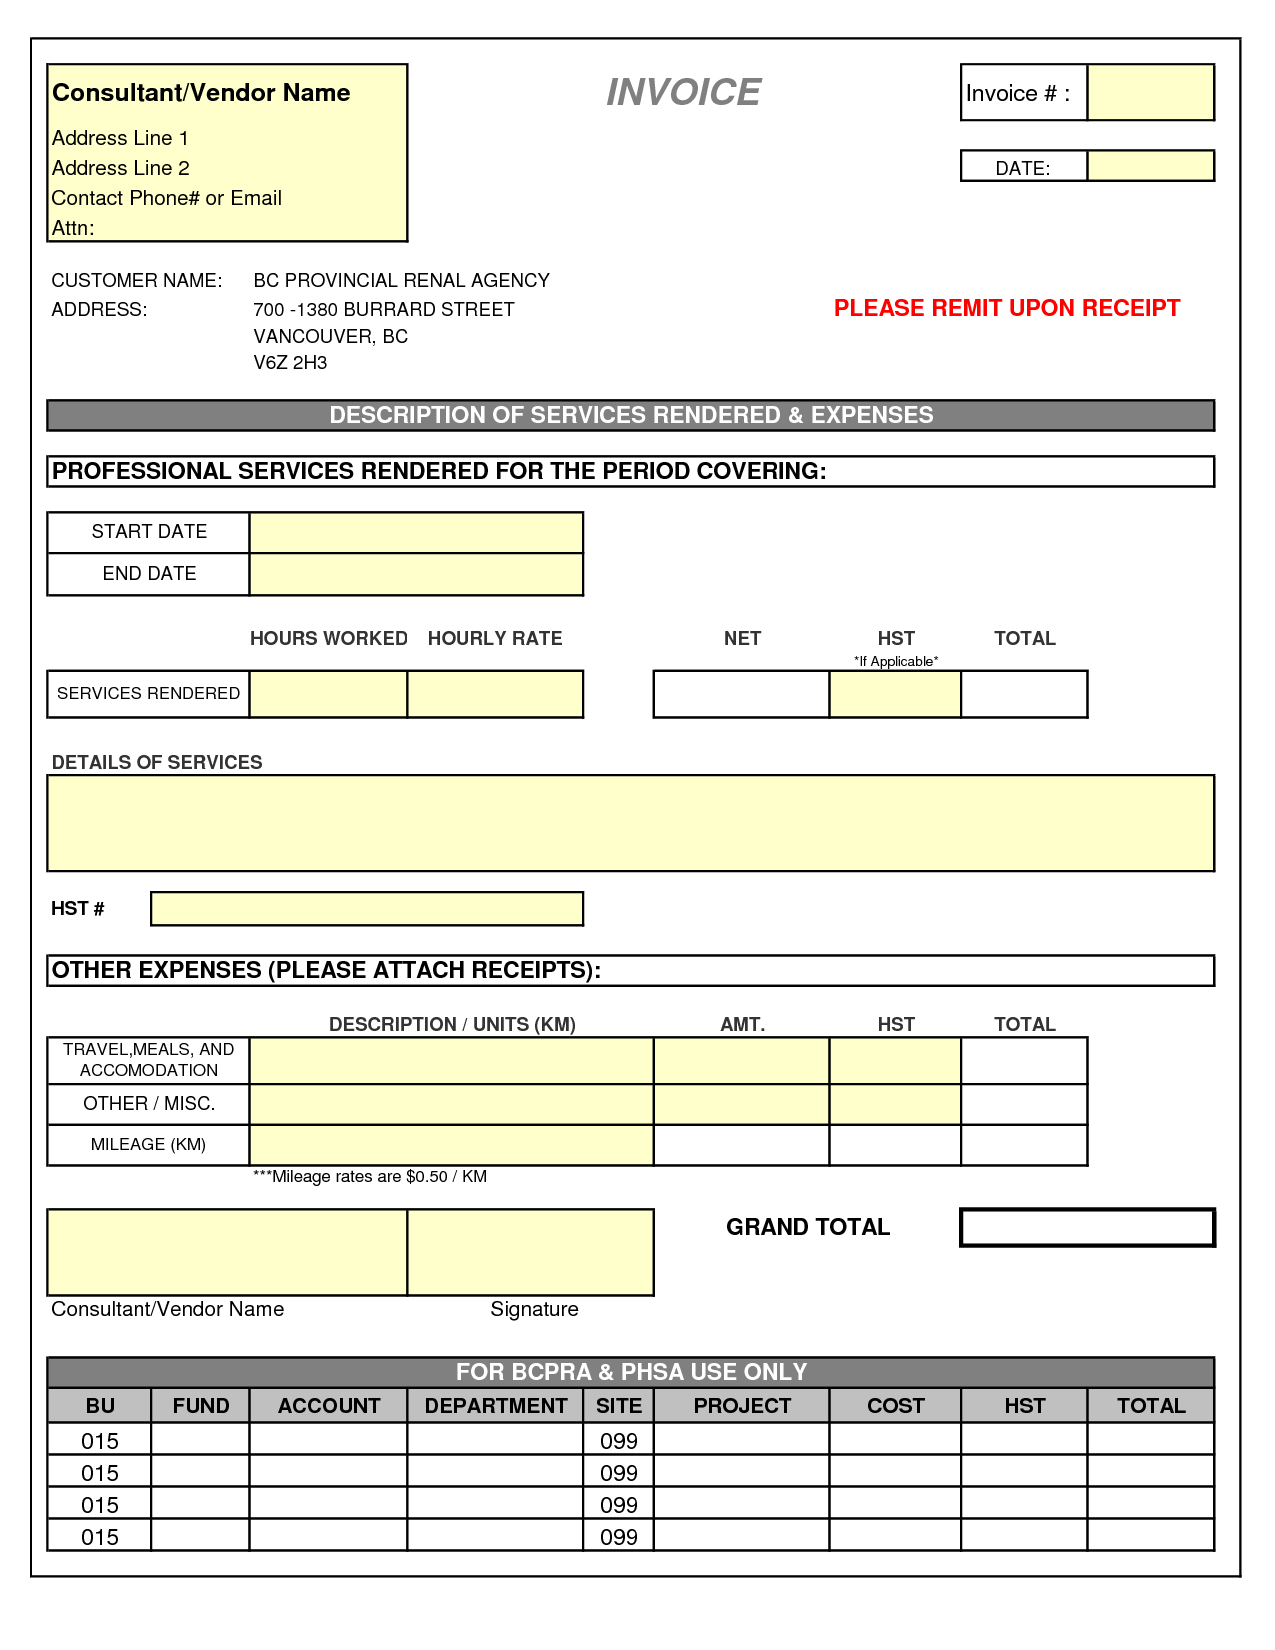 Sample Invoices Excel and Retainer Invoice Sample Rabitah